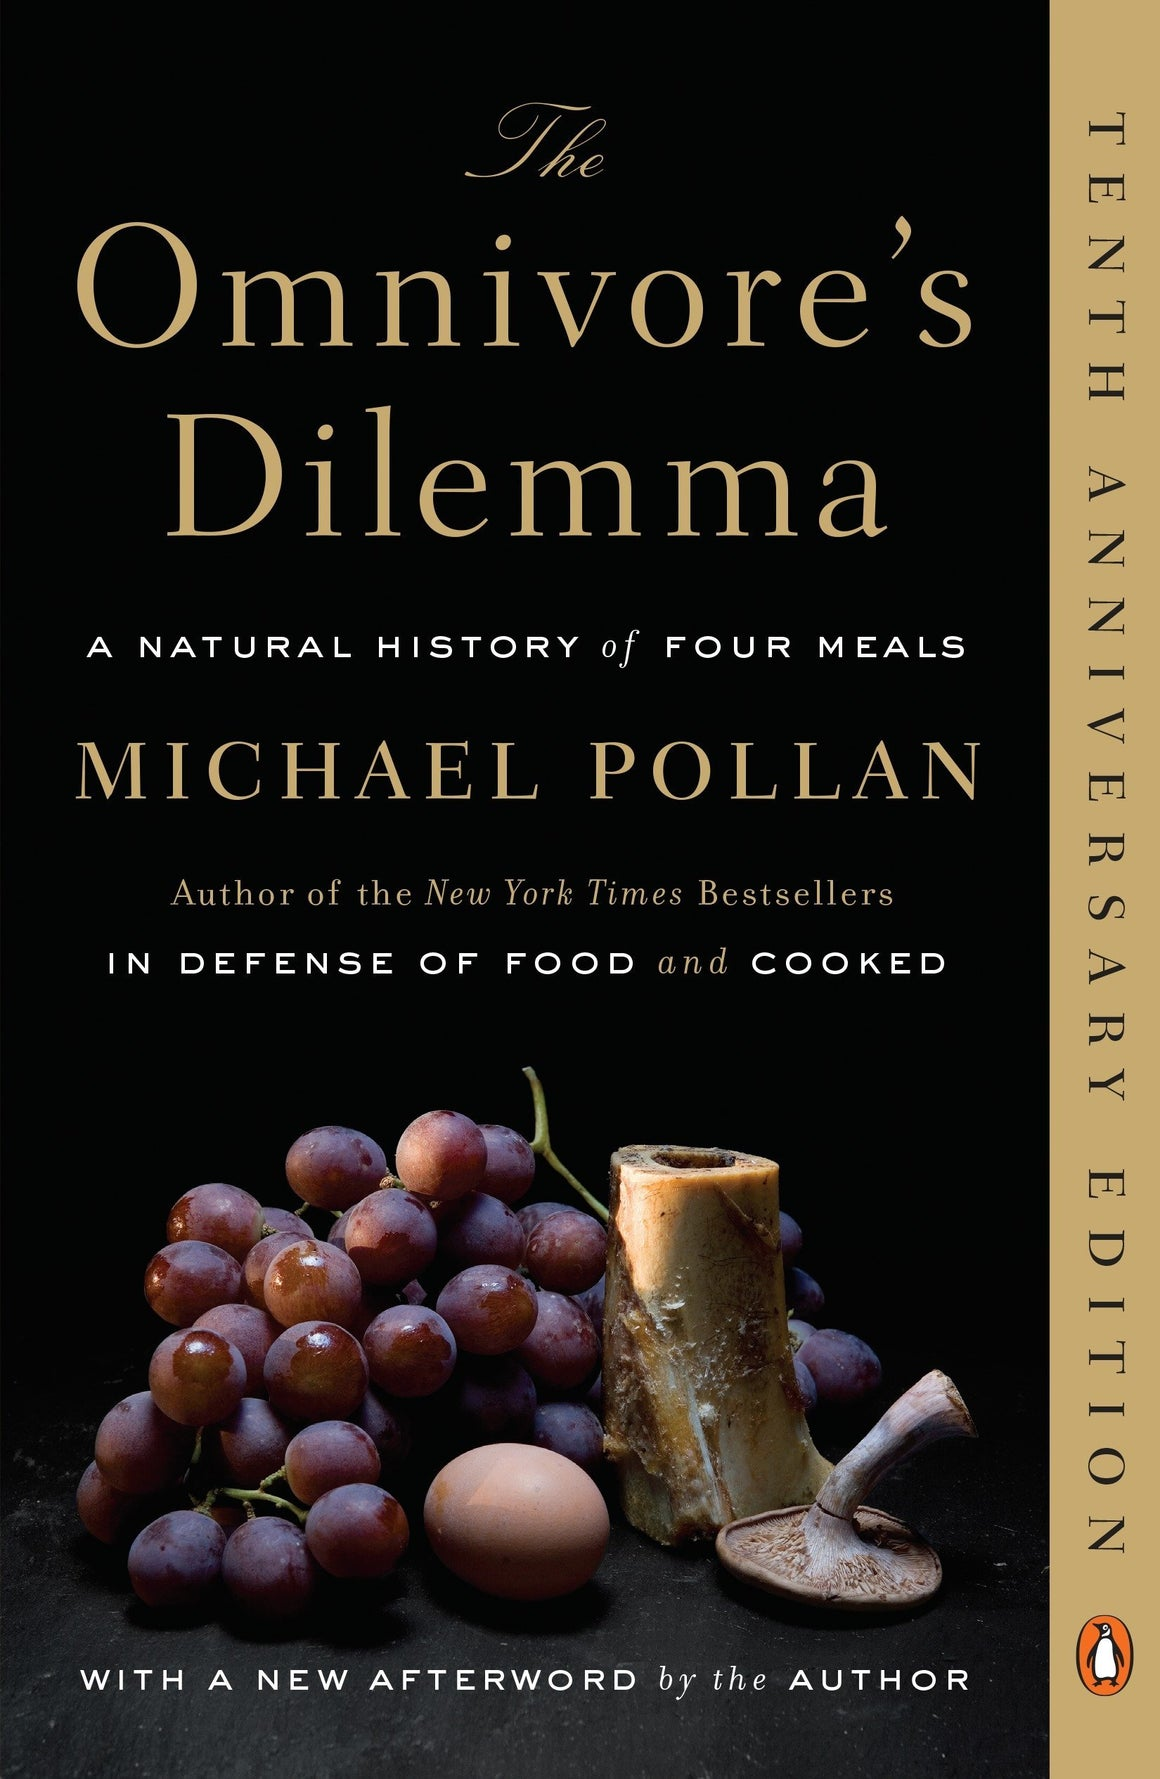 Pollan, Michael. The Omnivore's Dilemma.